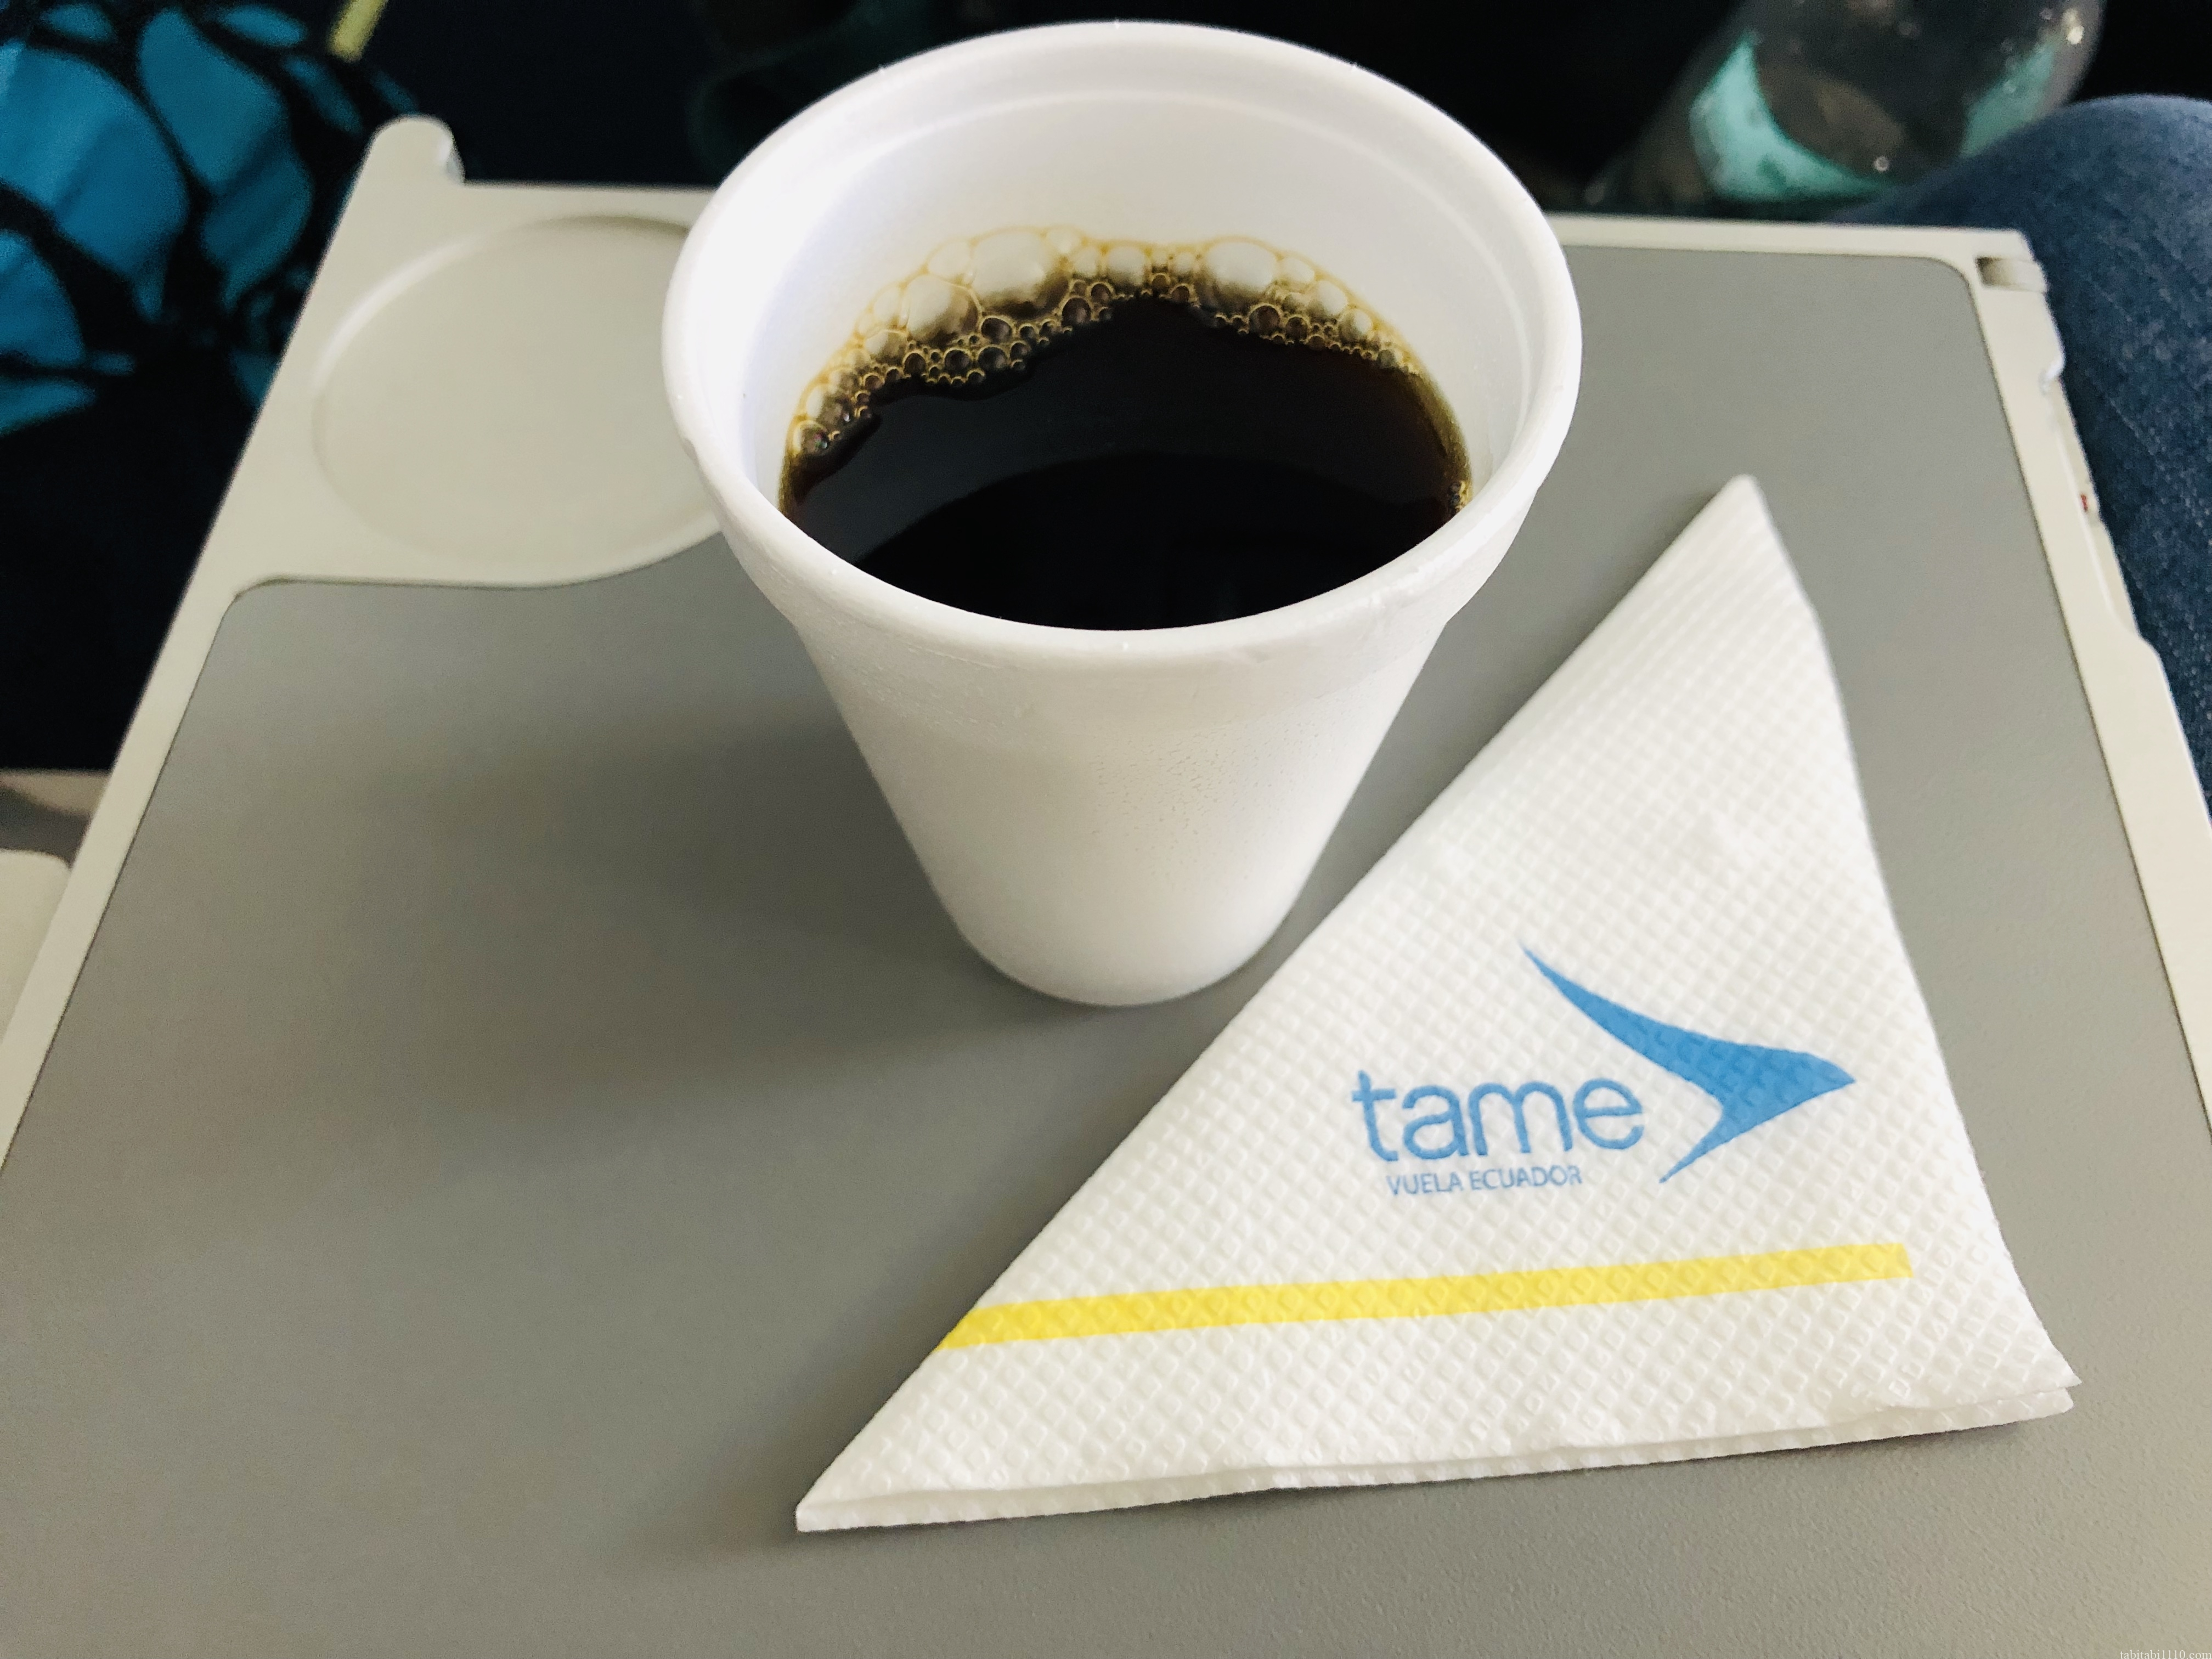 tame航空